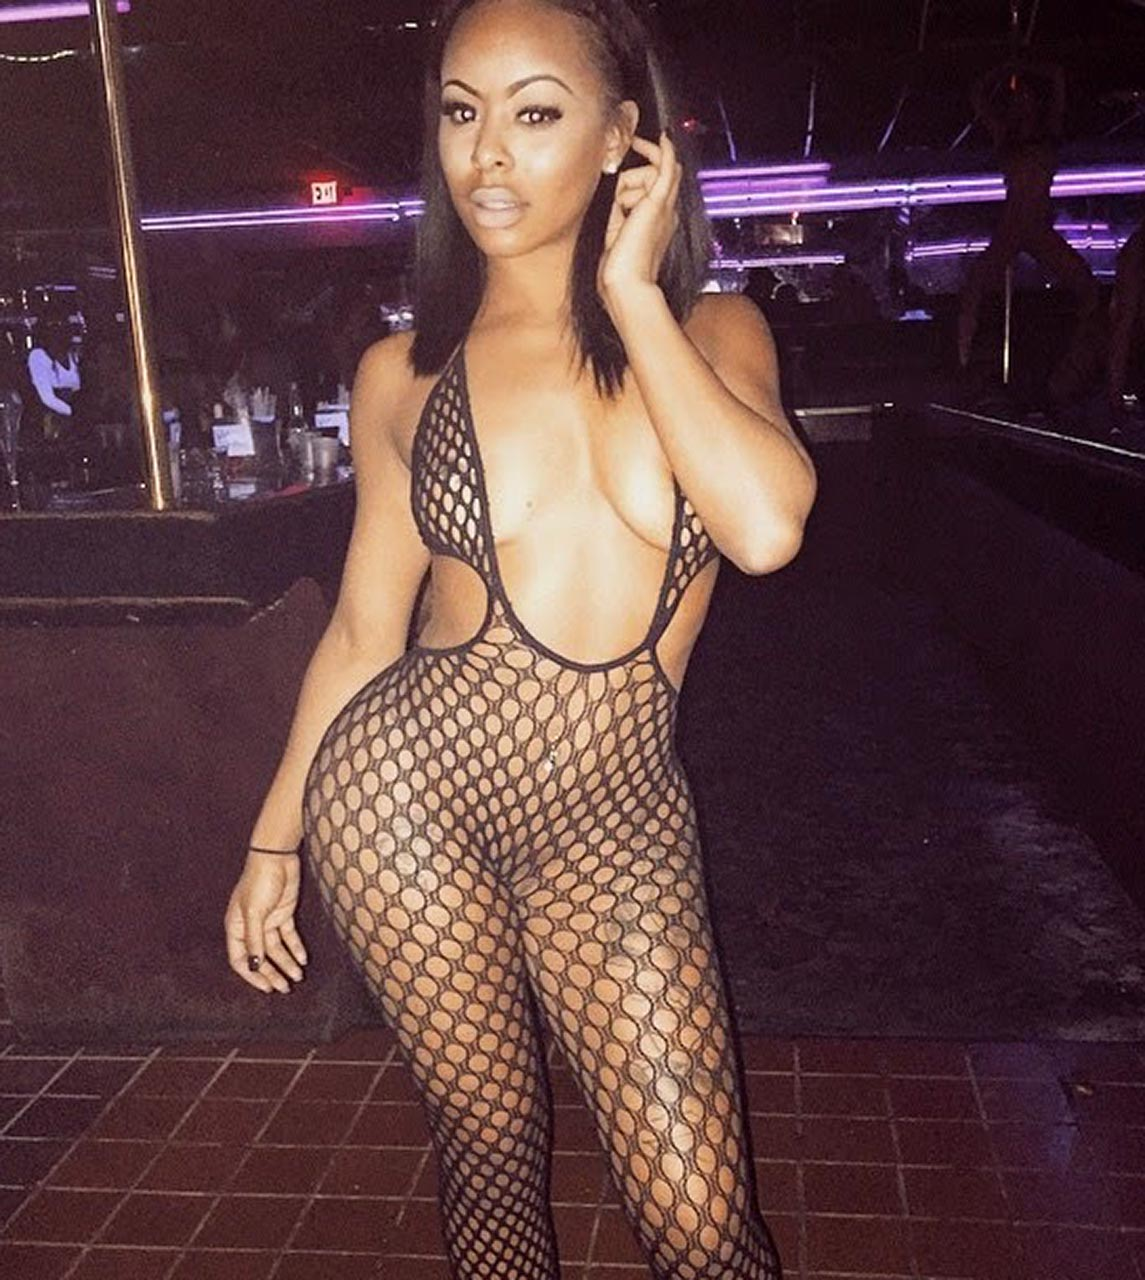 Boobs Alexis Skyy nudes (44 foto and video), Topless, Is a cute, Boobs, bra 2006